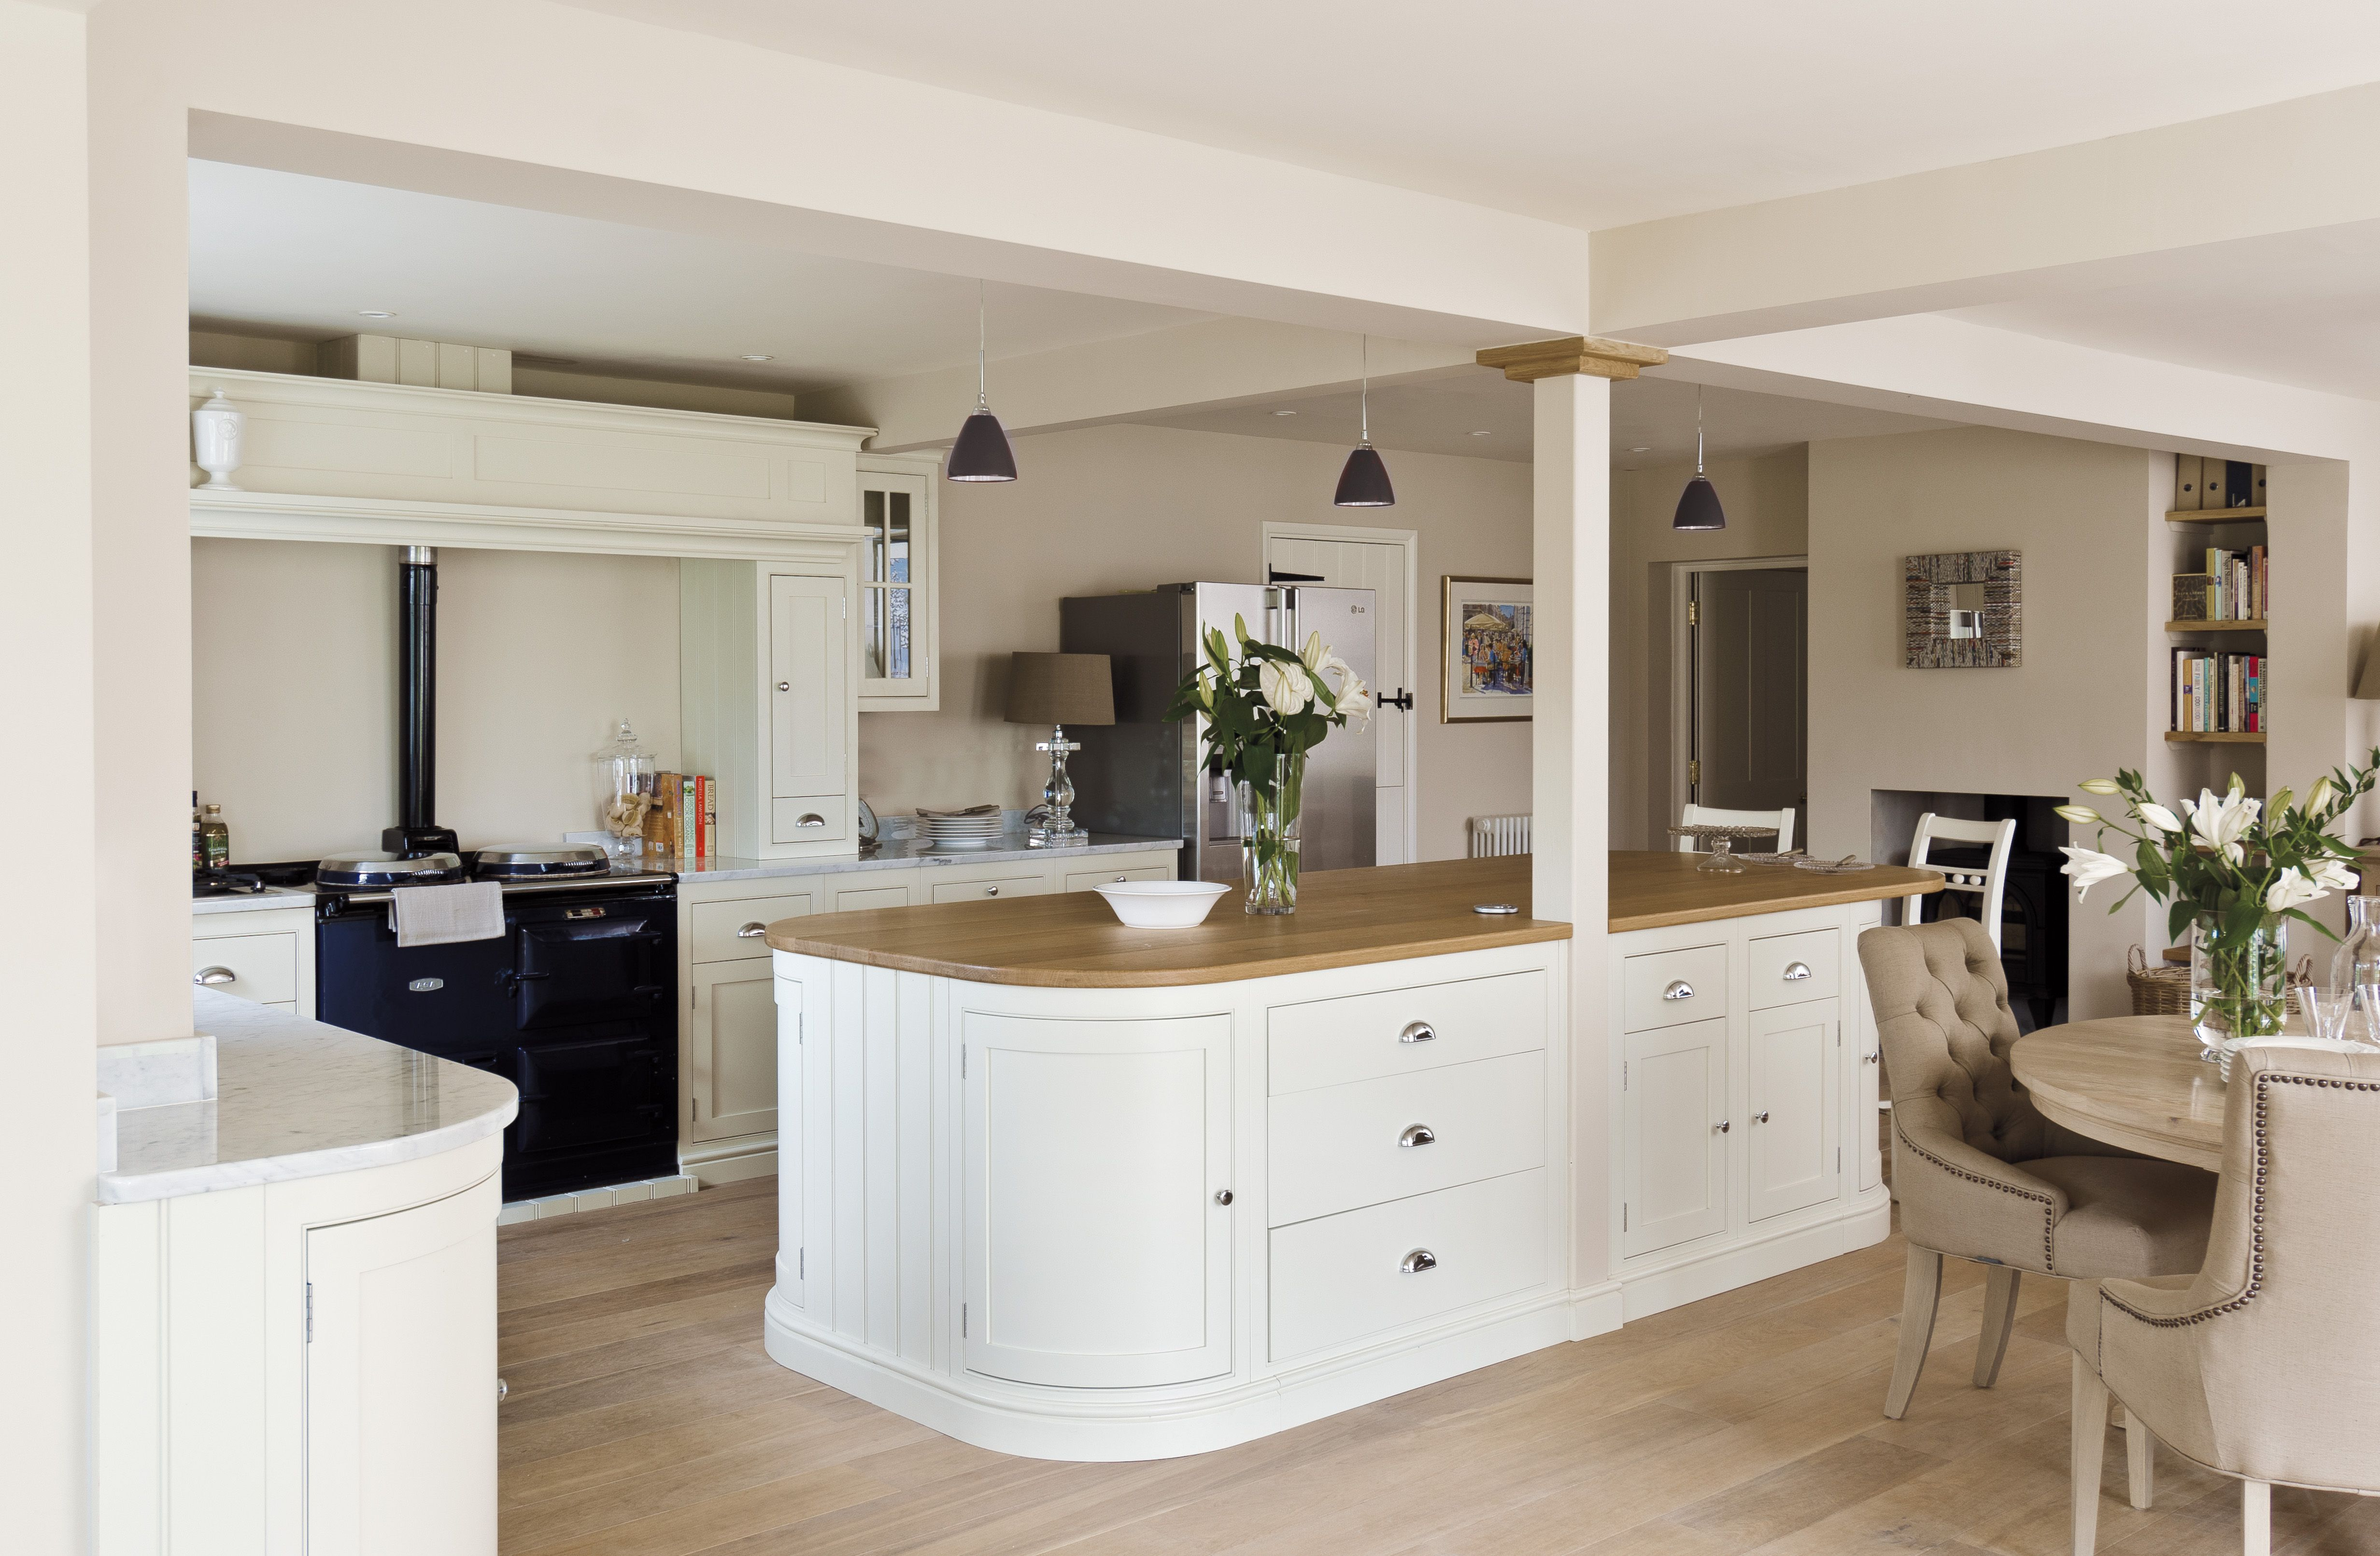 Neptune Bedroom Furniture Love This Neptune Suffolk Kitchen With Navy Aga And Henley Mocha